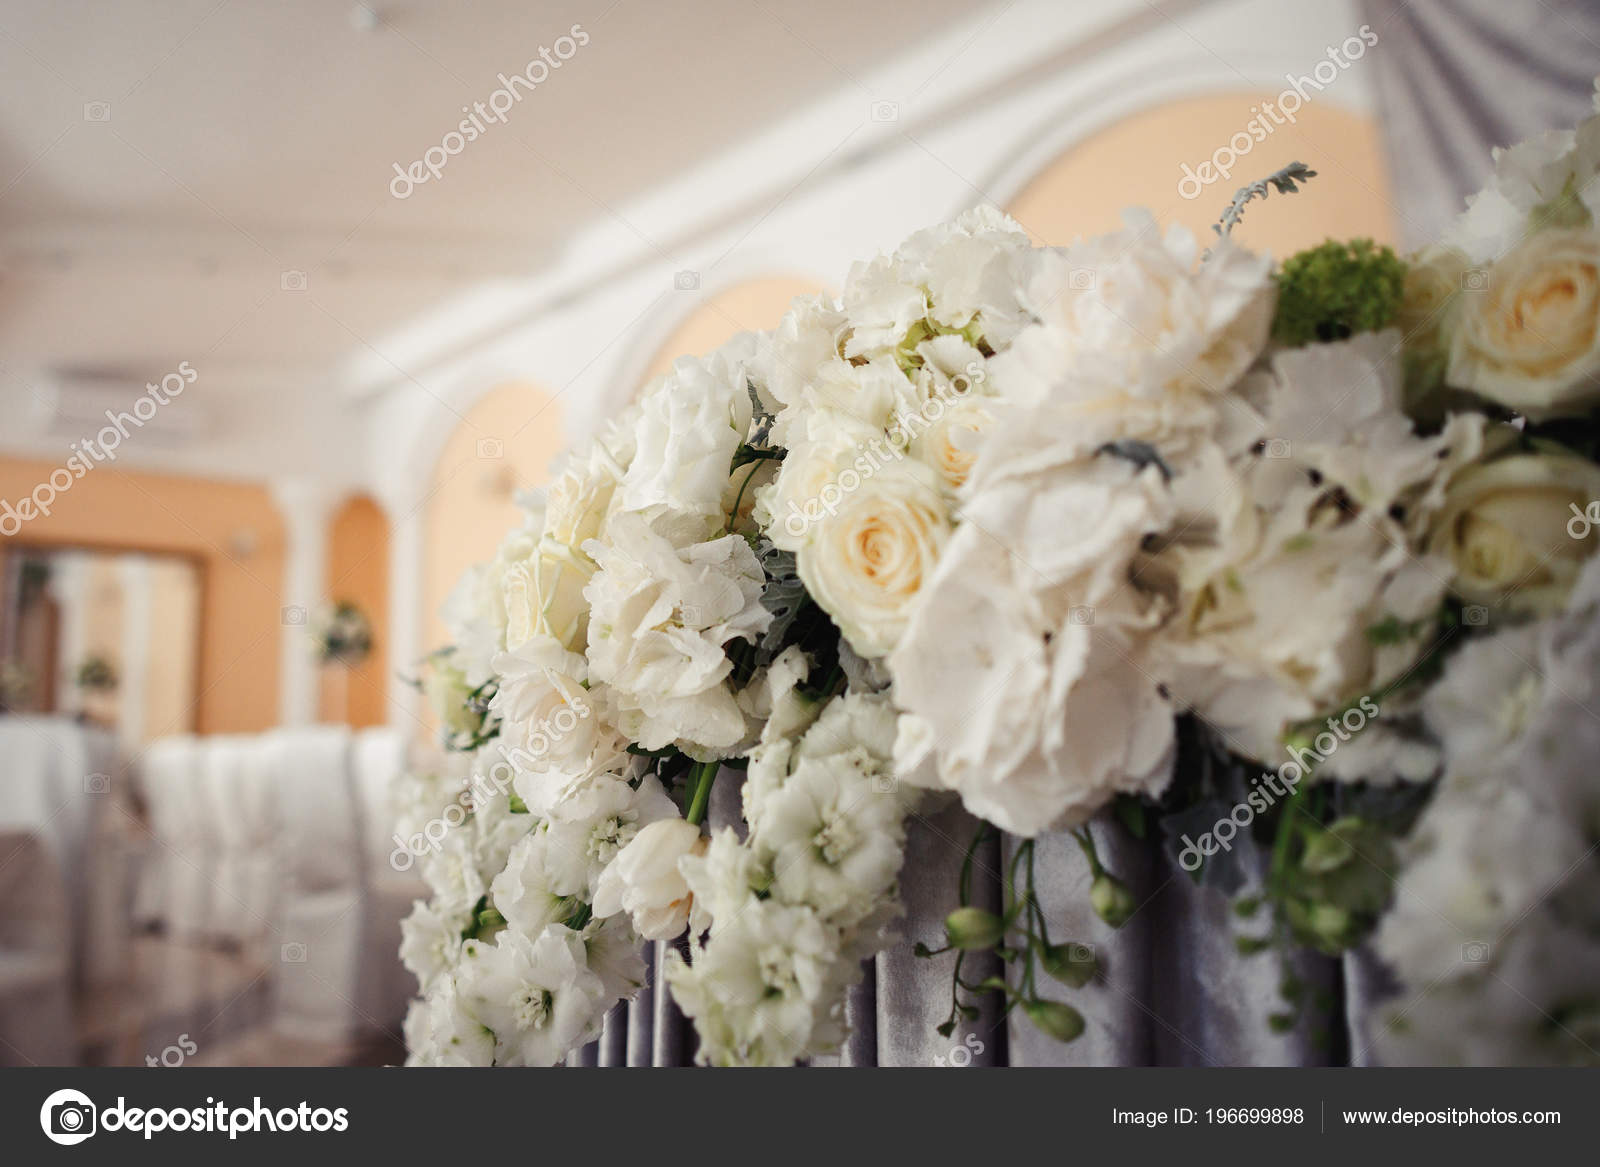 Wedding decoration flowers ceremony stock photo vaksmanv101 wedding decoration flowers ceremony stock photo junglespirit Choice Image